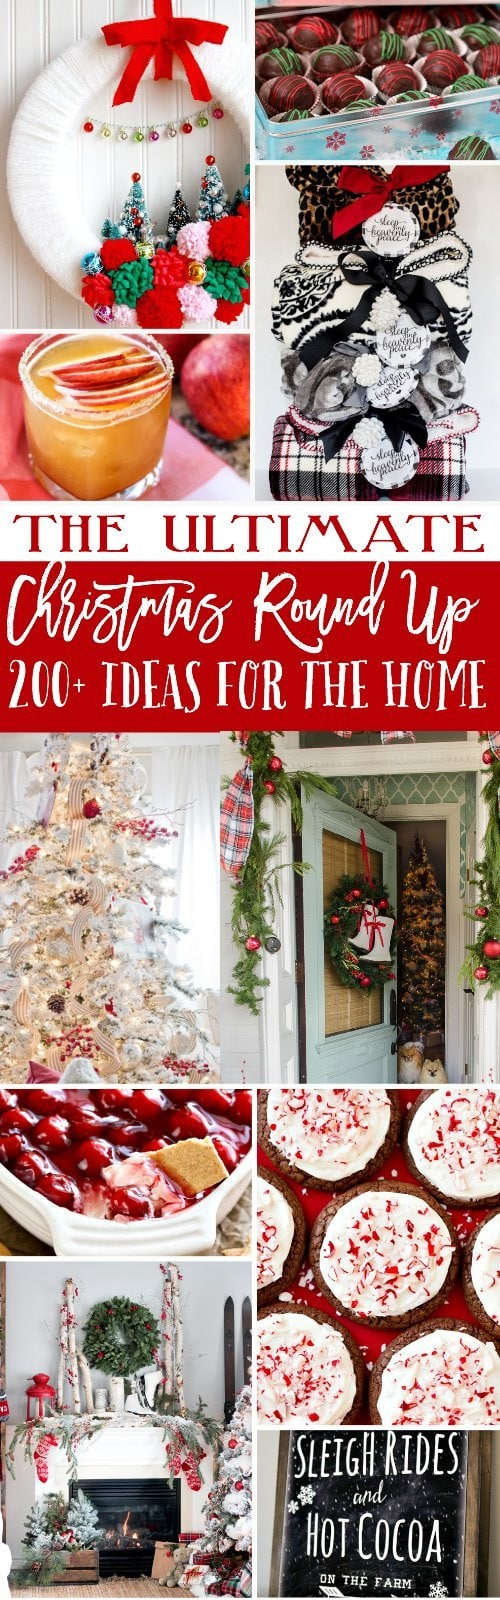 the ultimate christmas round up with 200 ideas